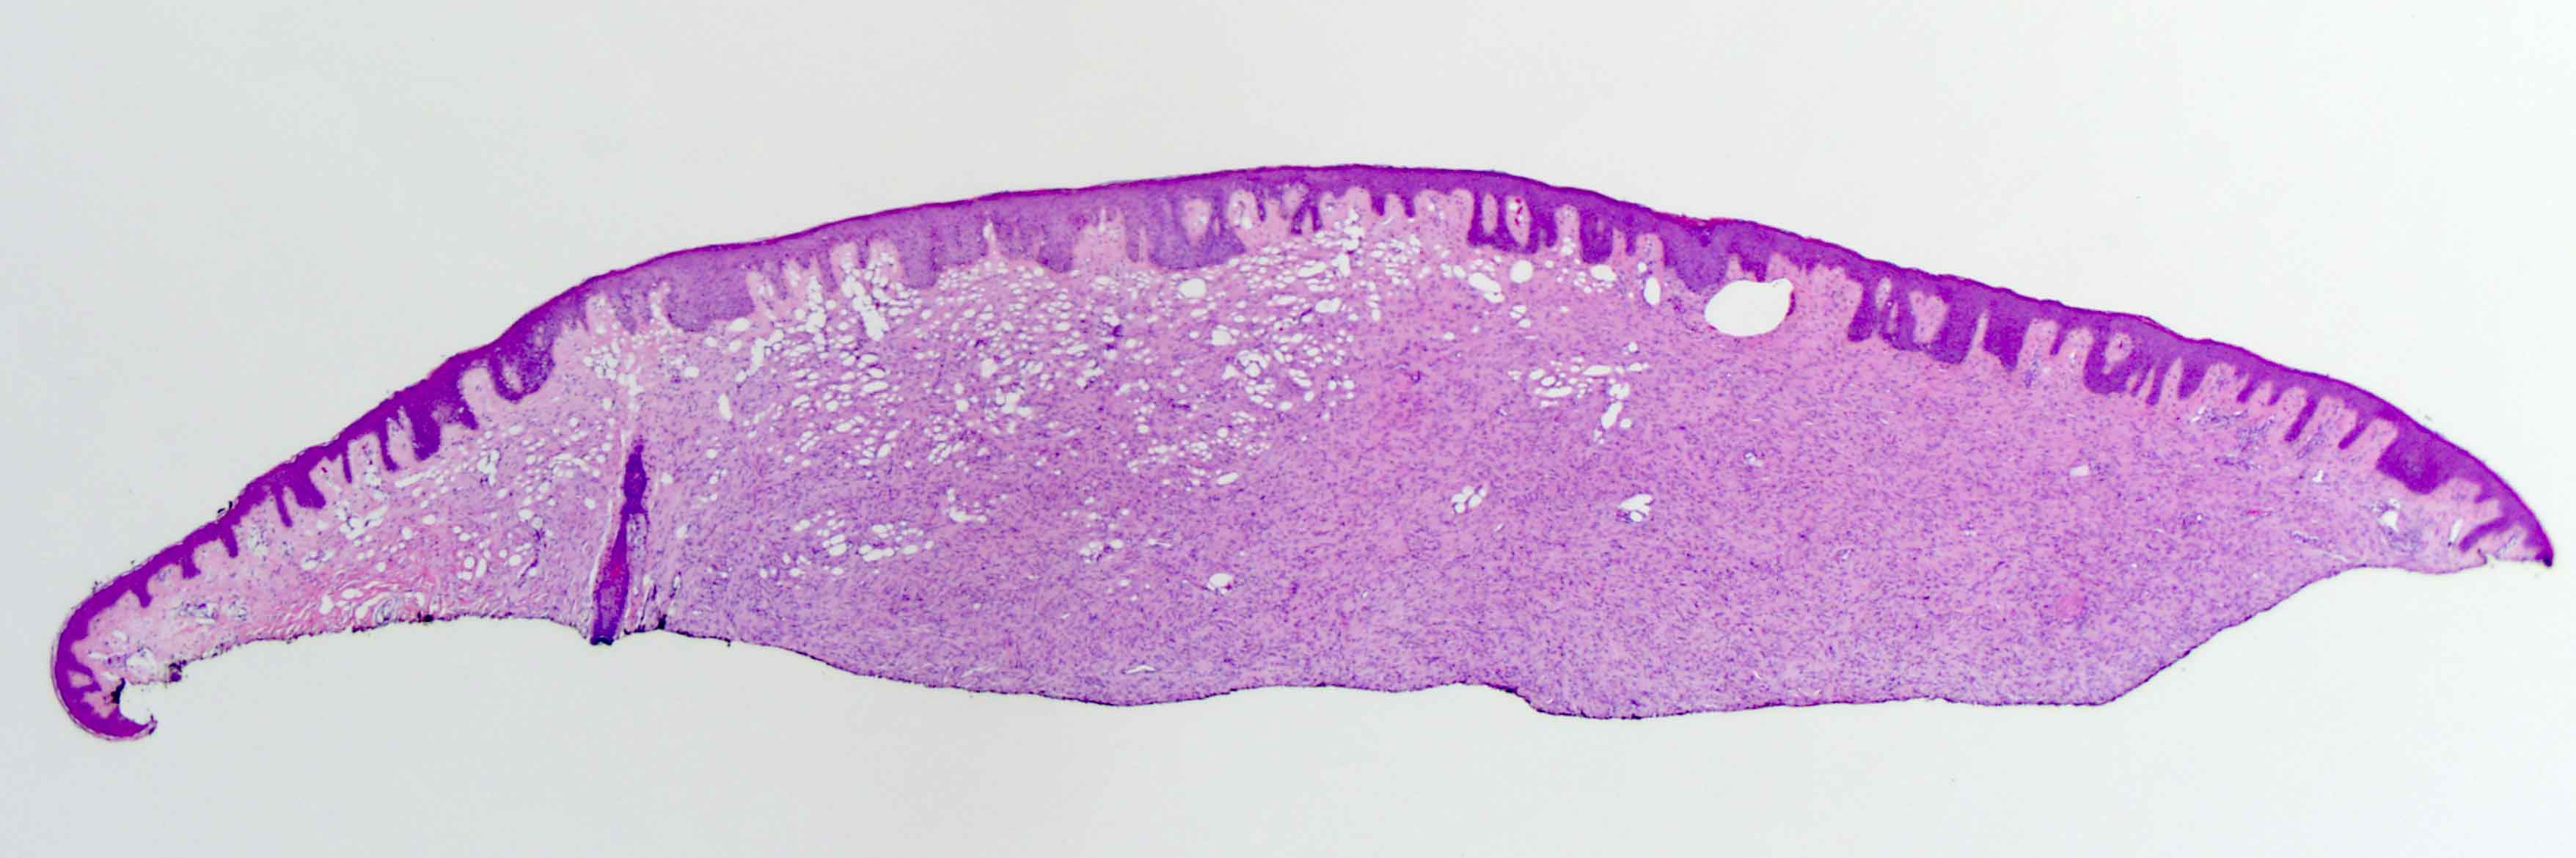 Slide 1: The shaved biopsy specimen shows an acanthotic epidermis. Within the dermis there is an spindled cell neoplasm that spans the entire dermis.  A 42-year-old female presented with an irregular brownish red plaque under the right breast growing in size for 9 years.